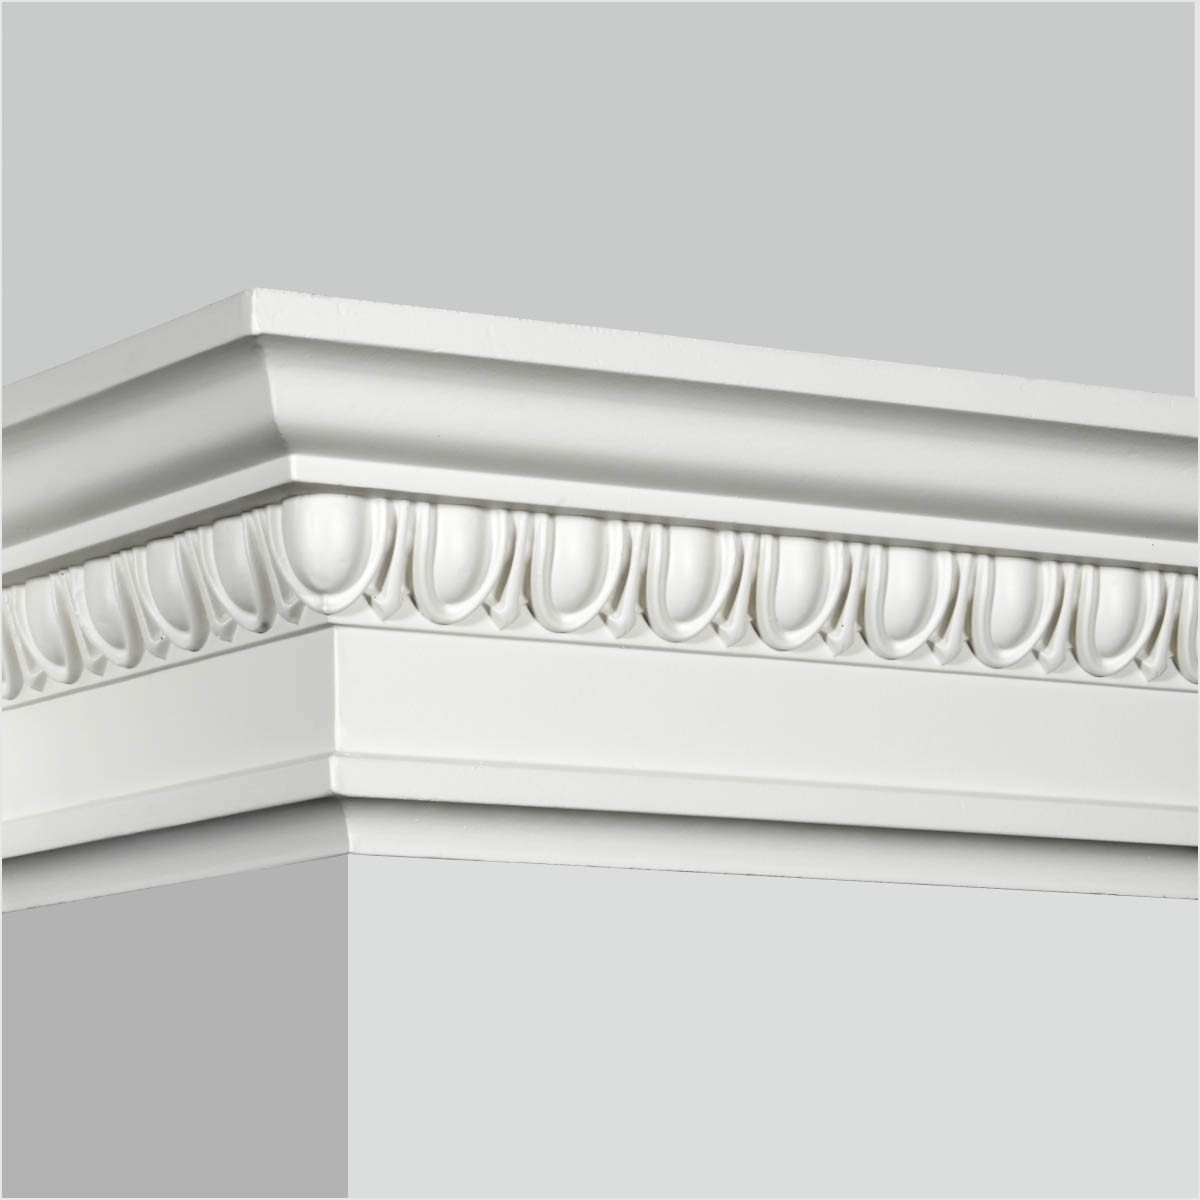 Polyurethane egg and dart crown molding